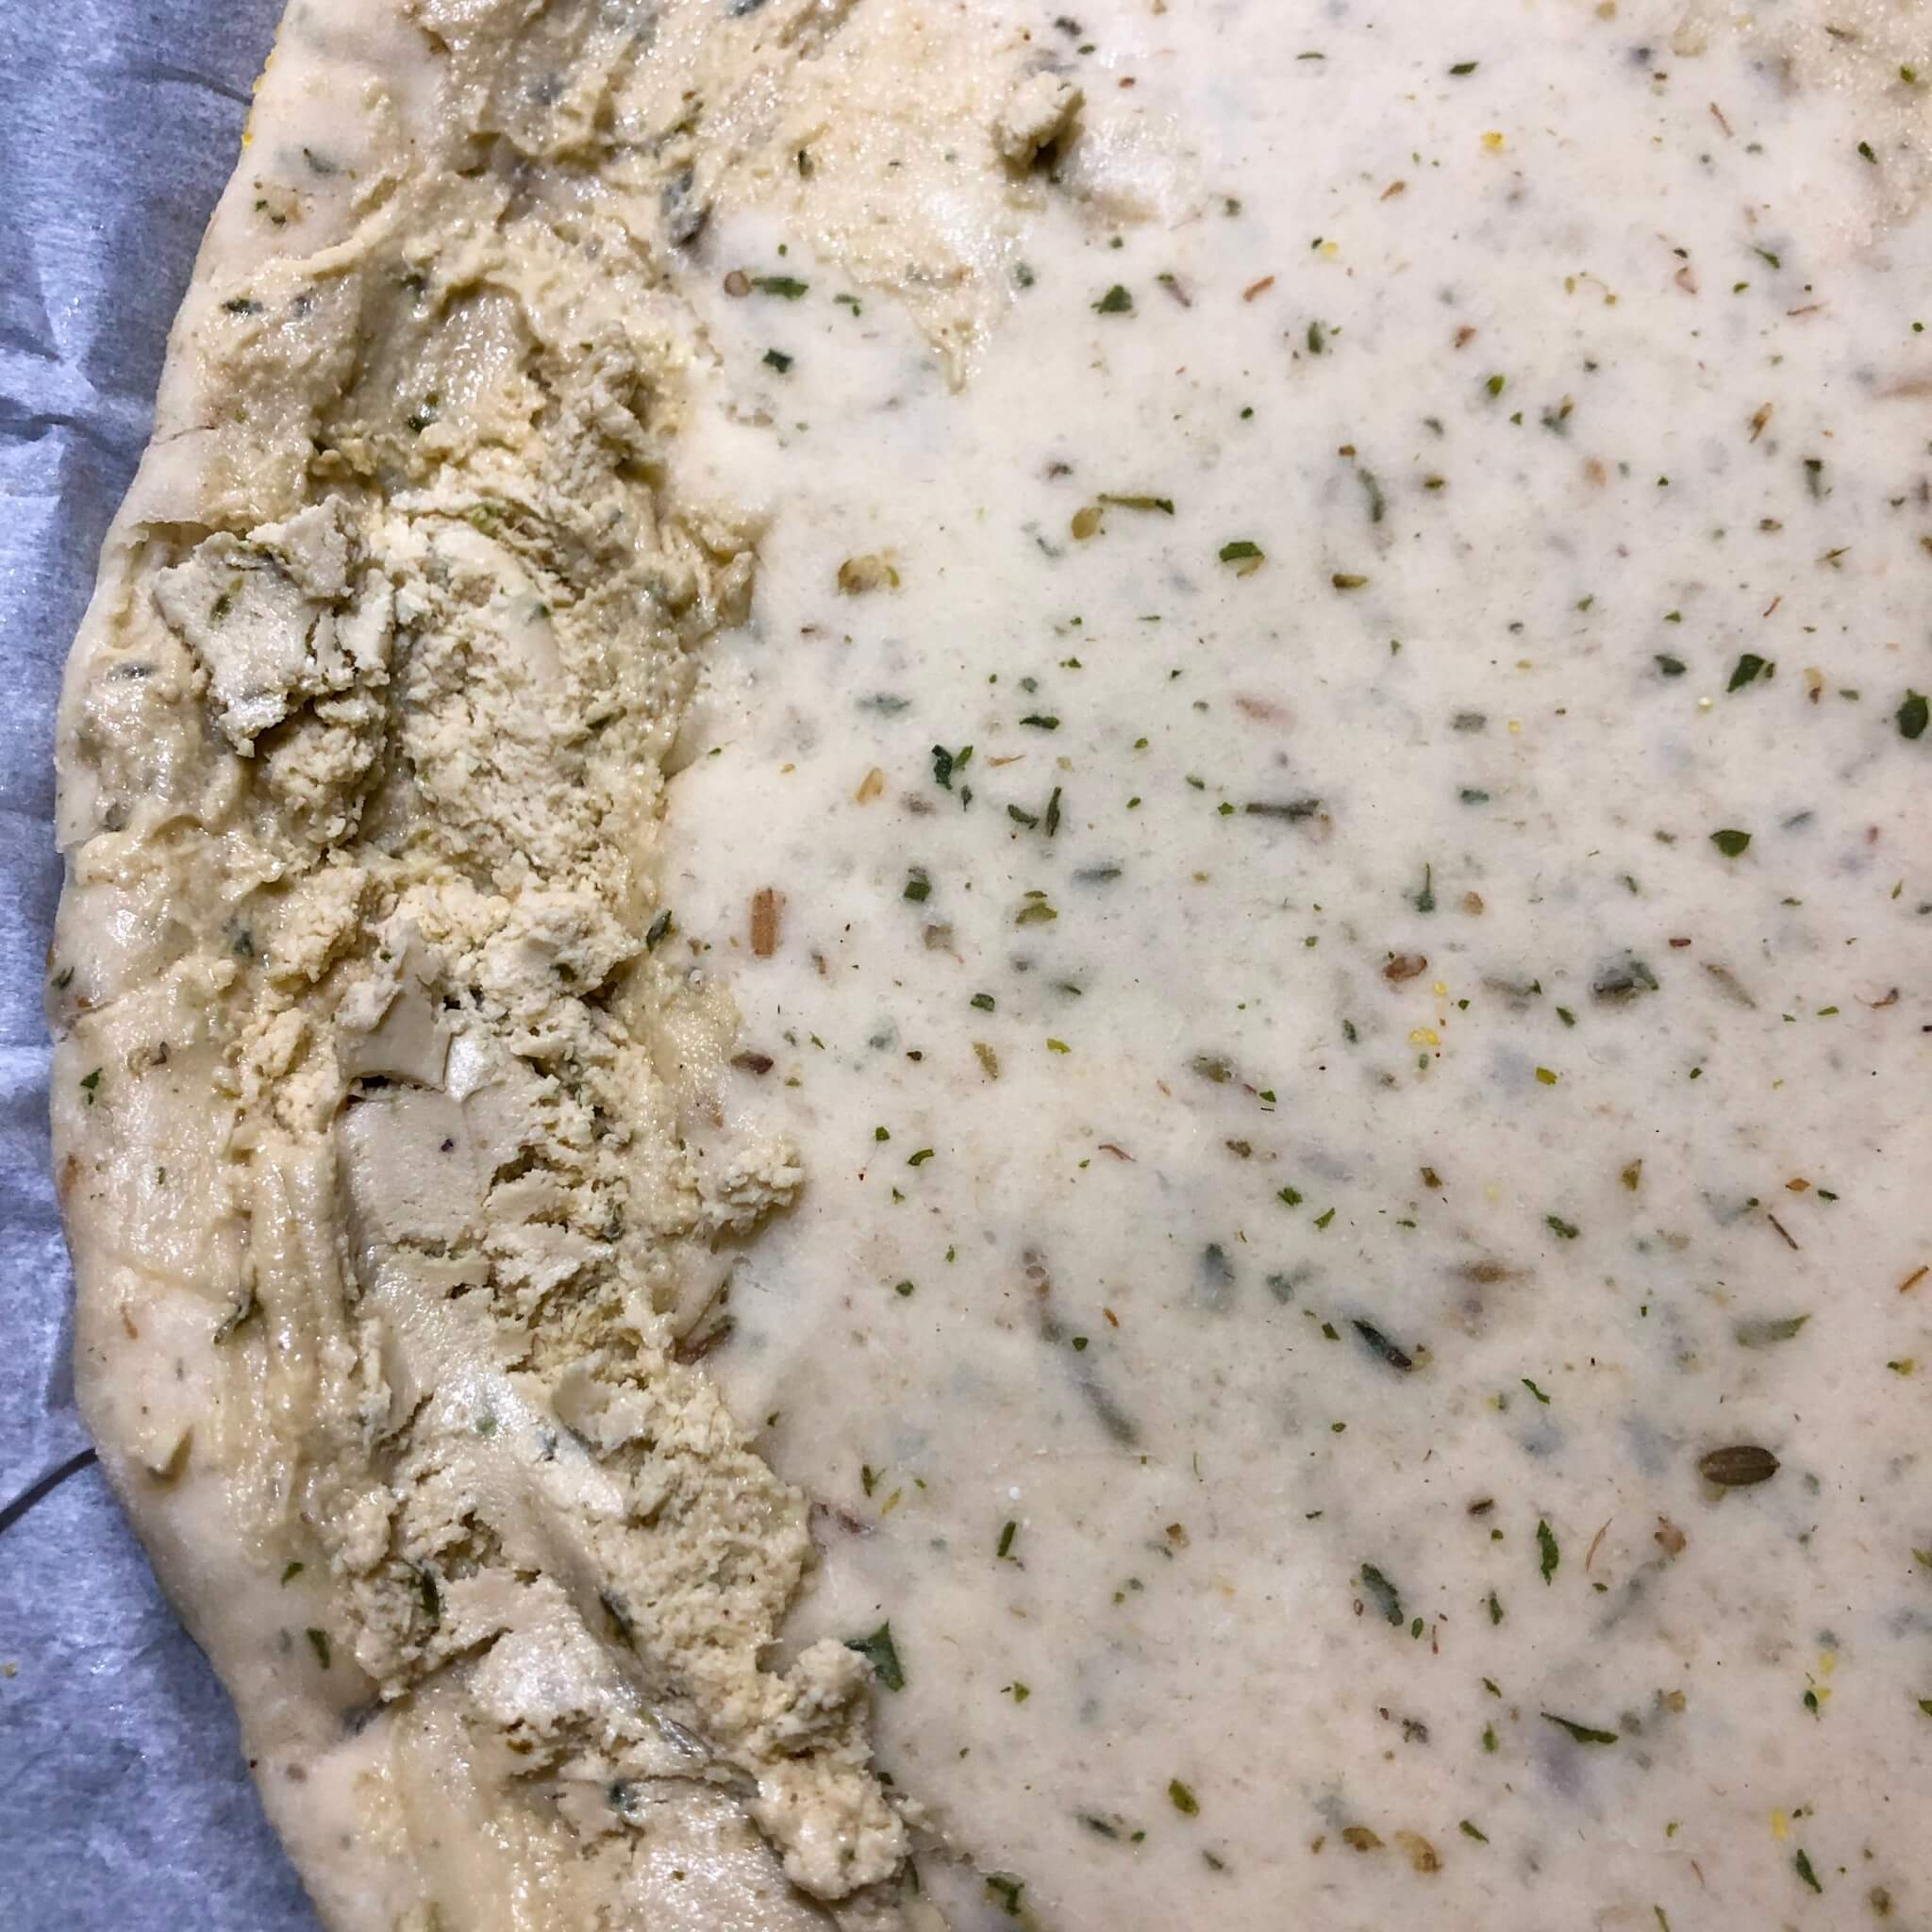 fauxmage on the pizza dough